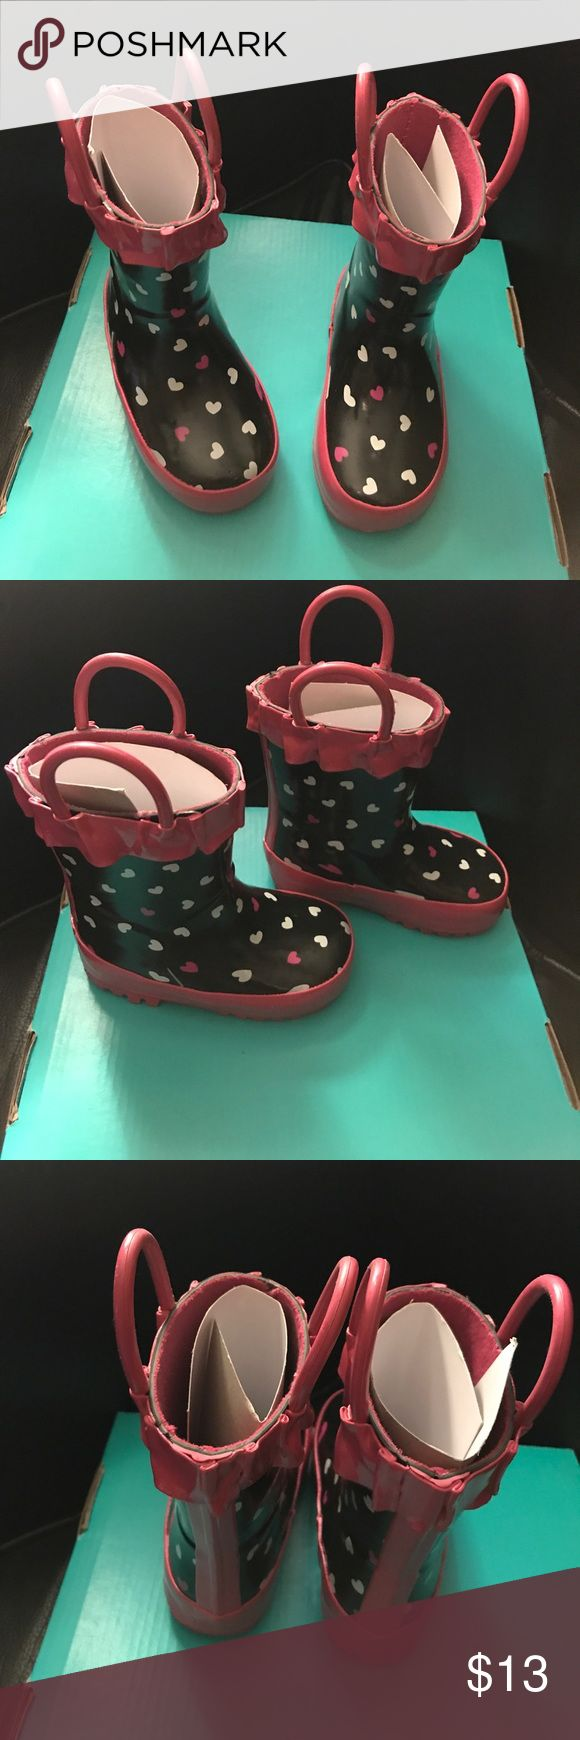 Toddler girls rain boots Toddler girls rain boots new size 4/5 pink and black with hearts Shoes Rain & Snow Boots